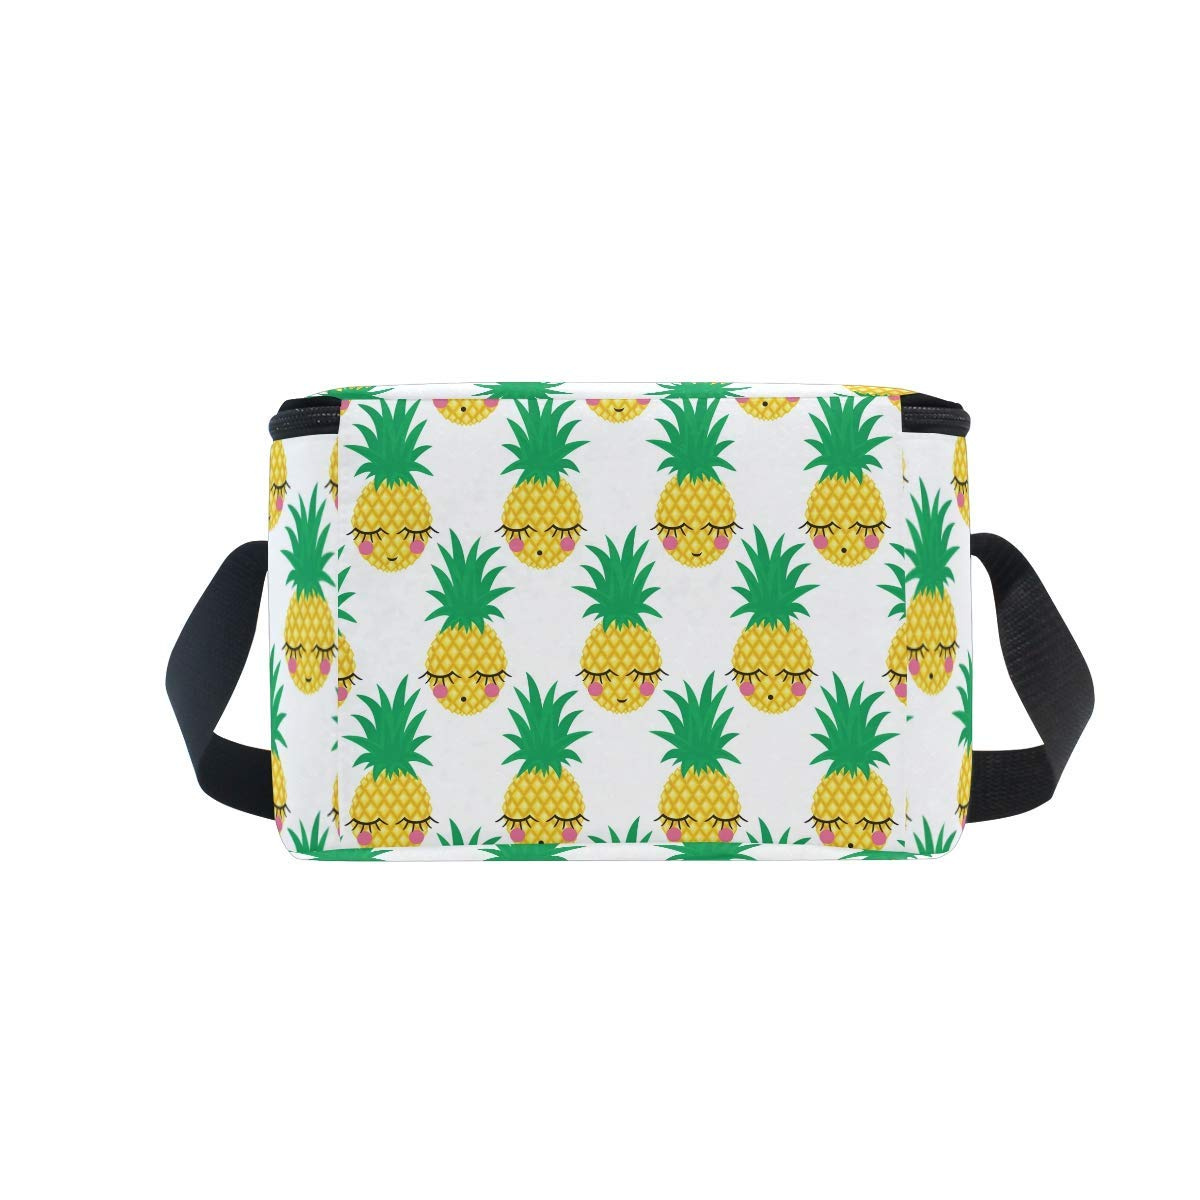 be96ffeb1ebc Bashful Pineapple Lunch Box Insulated Lunch Bag Large Cooler Tote Bag for  Kids Women